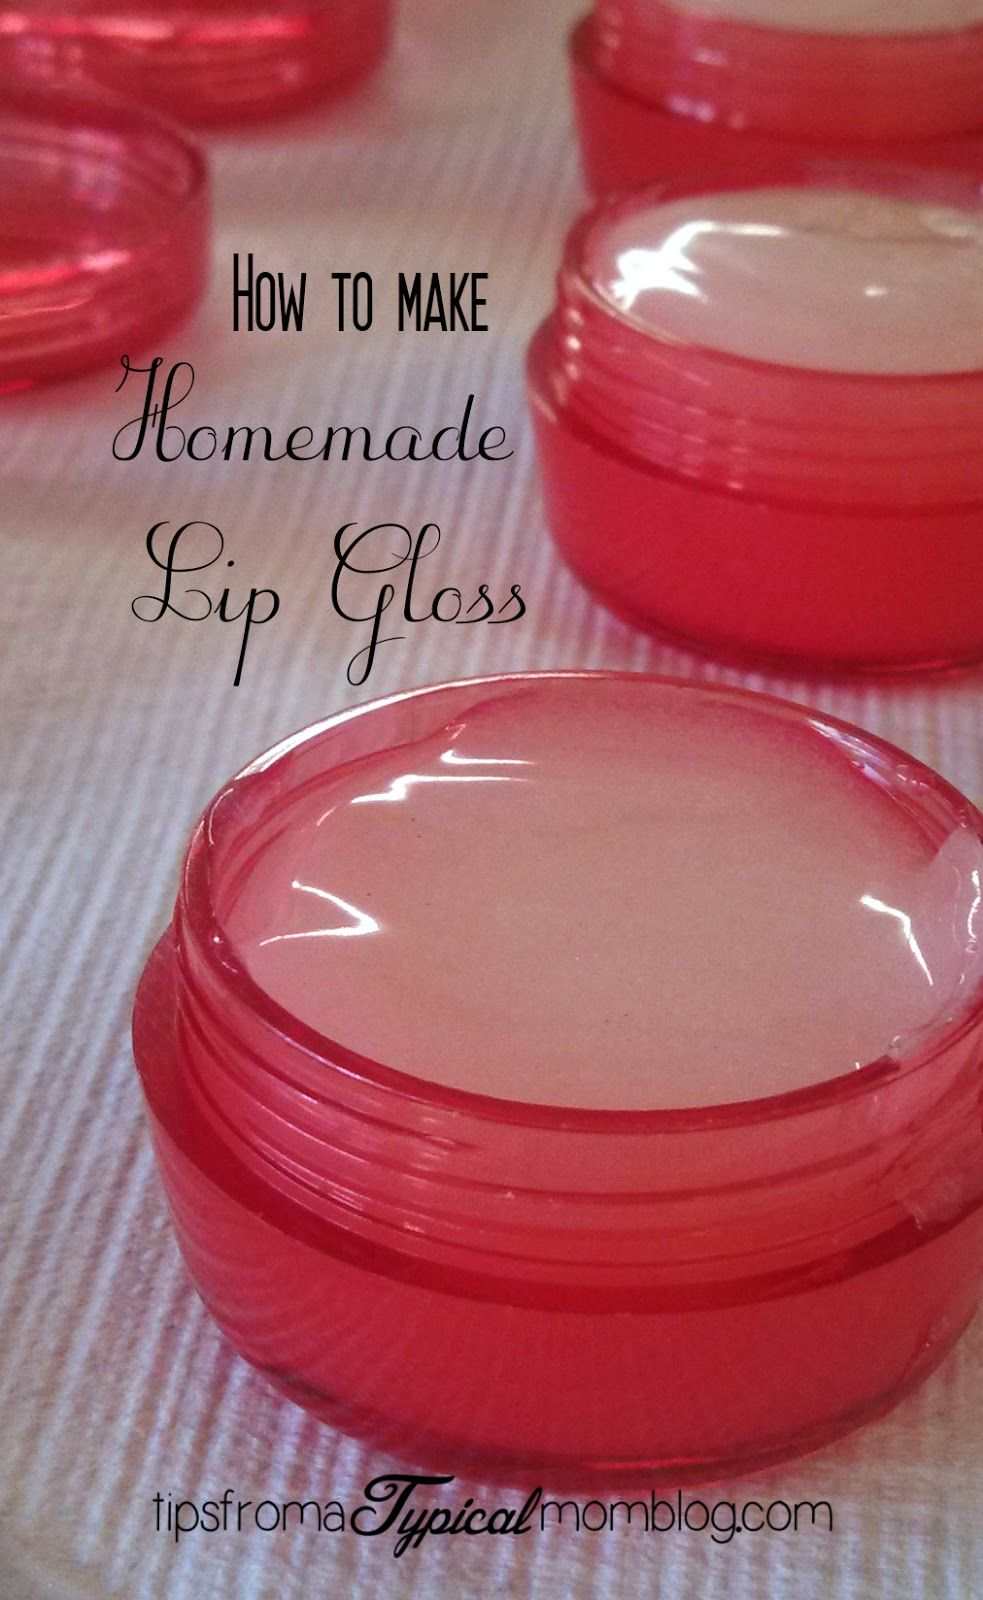 How To Make Homemade Lip Gloss With Kool Aid Diy Lip Gloss Diy